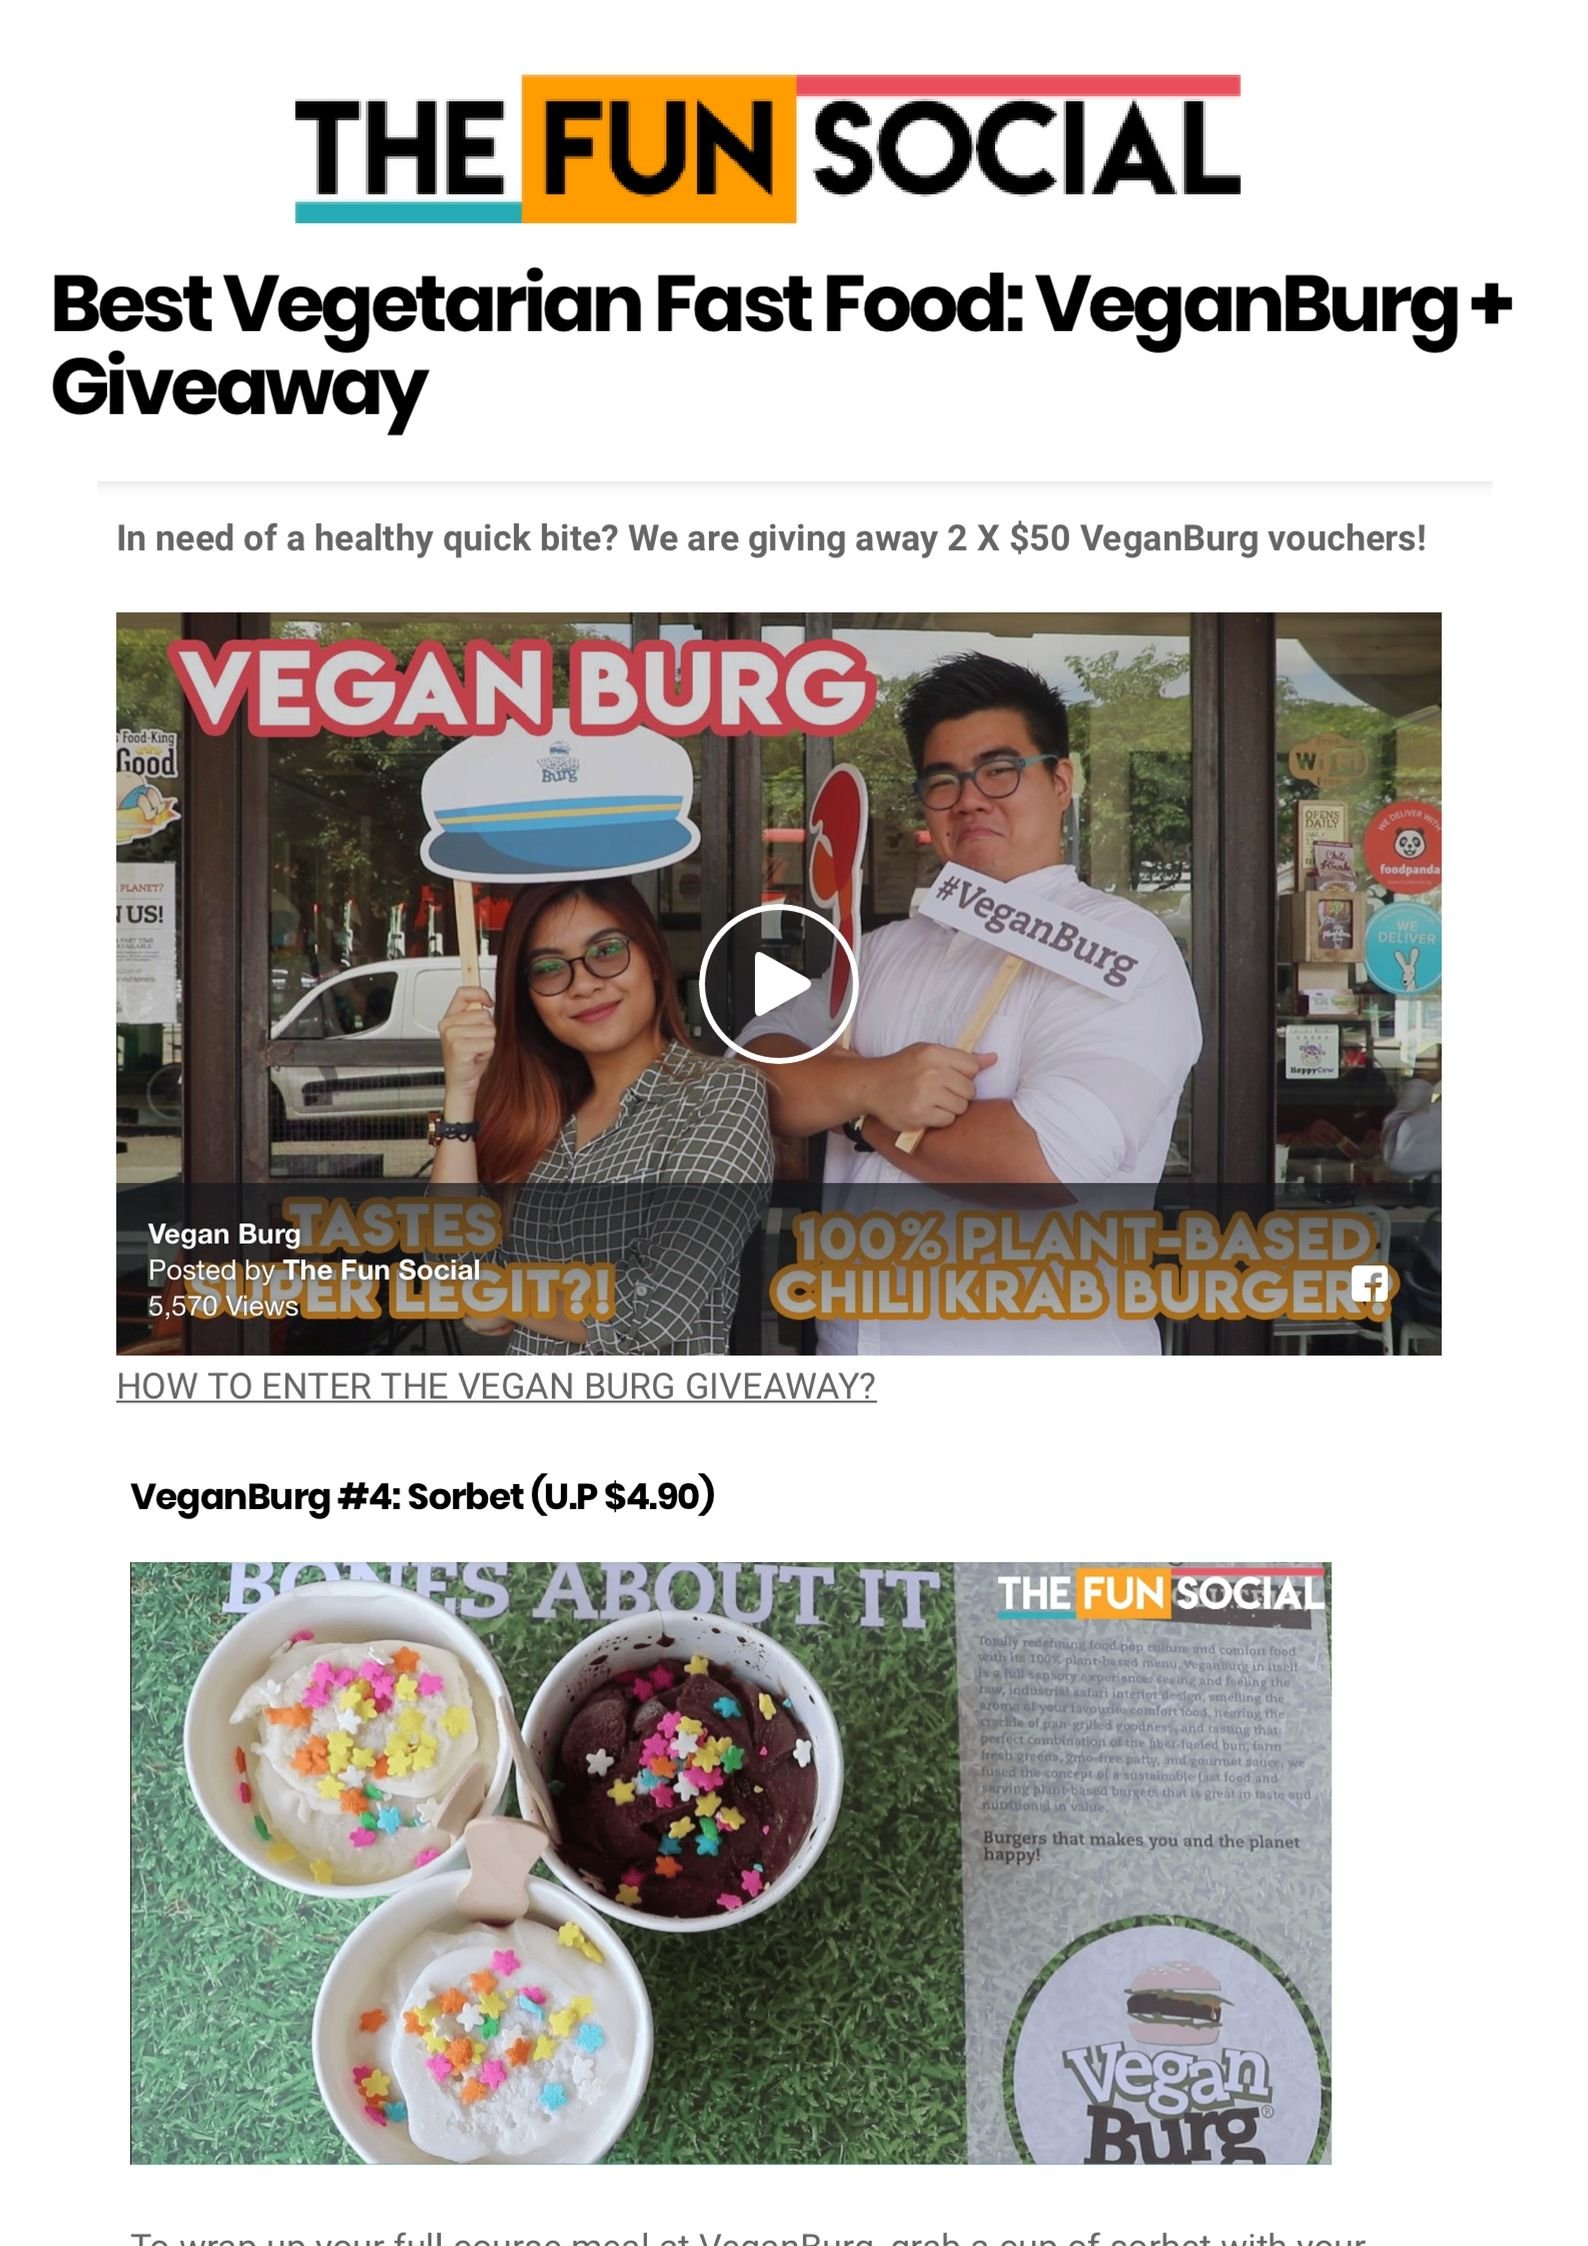 The Fun Social_ Best Vegetarian Fast Food_ VeganBurg + Giveaway.jpg